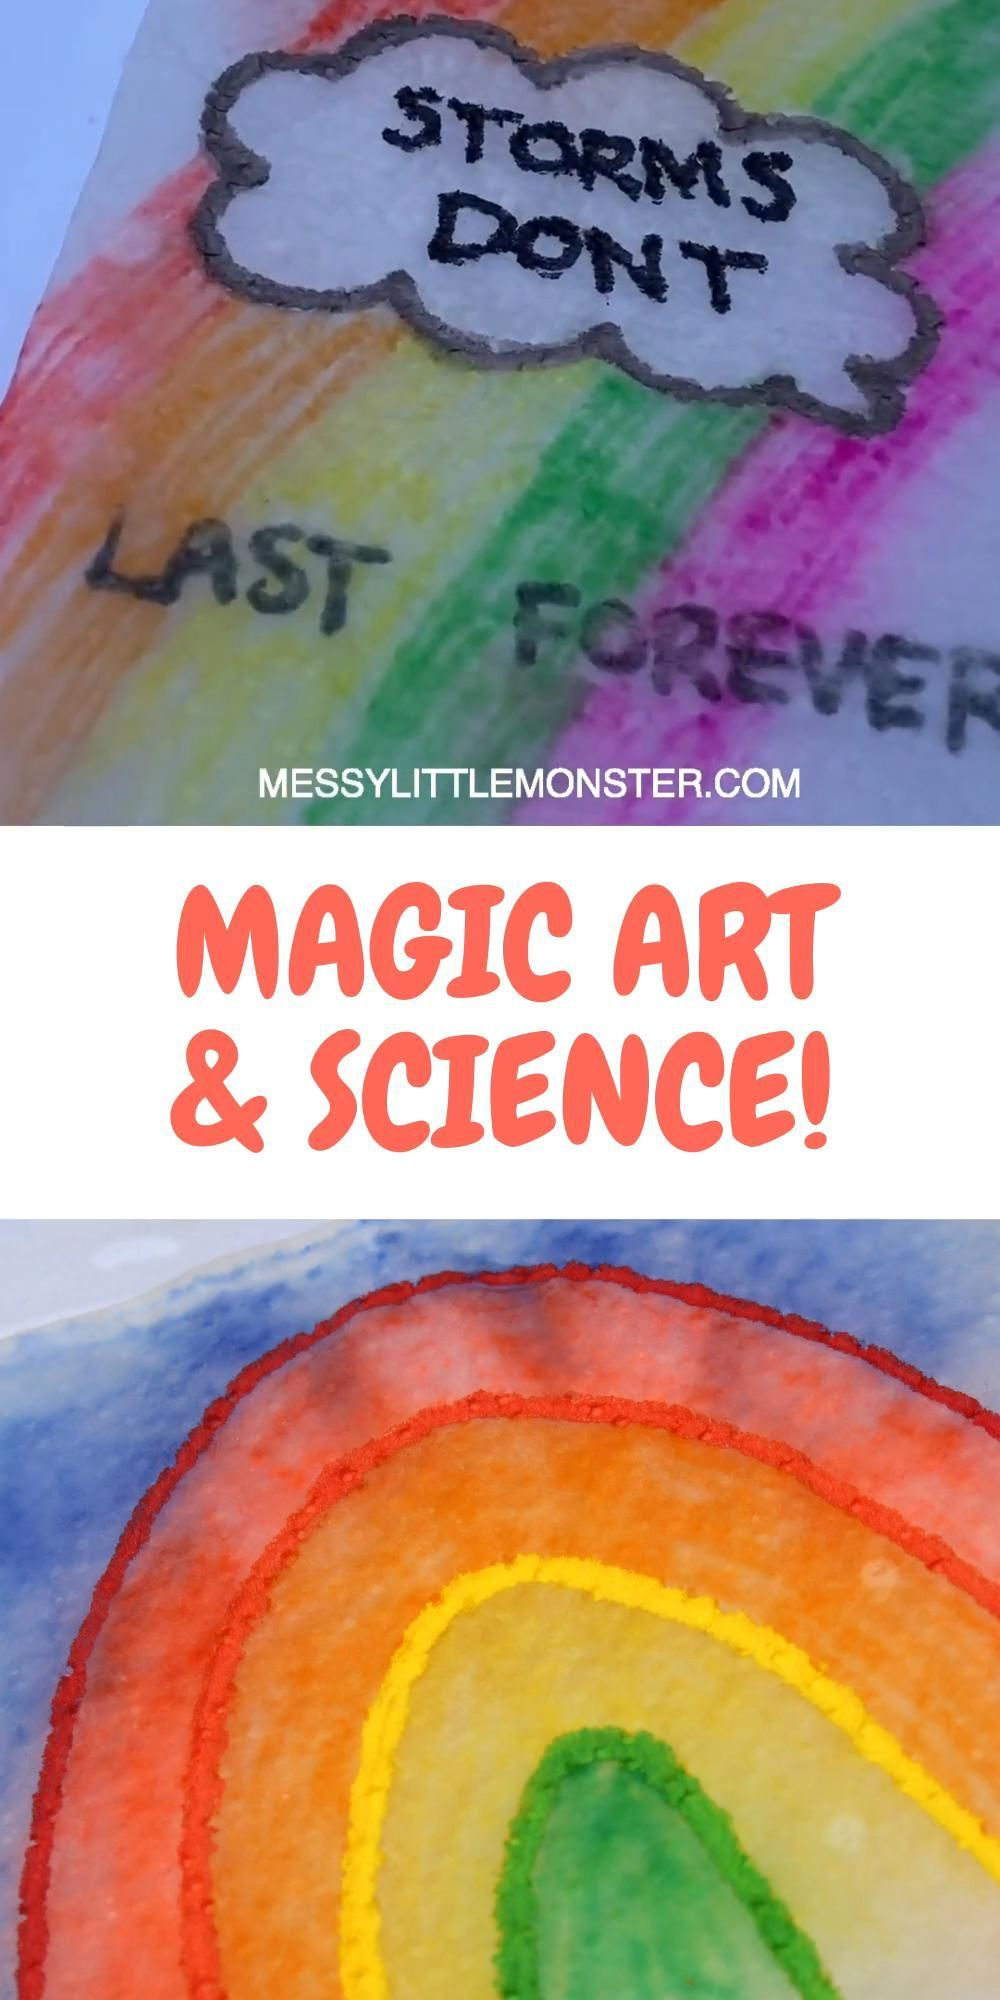 A fun science experiment and art activity for kids rolled into one. Magic paper towel art is a brilliant indoor activity for kids (or outdoor activity if you like) that kids of all ages will want to try again and again! | art education elementary fun activities #scienceexperiment #kidsart #kidsactivities #kidsactivity #kidscraft #scienceforkids #funscienceexperiments #papertowelart #indooractivities #indooractivitiesforkids